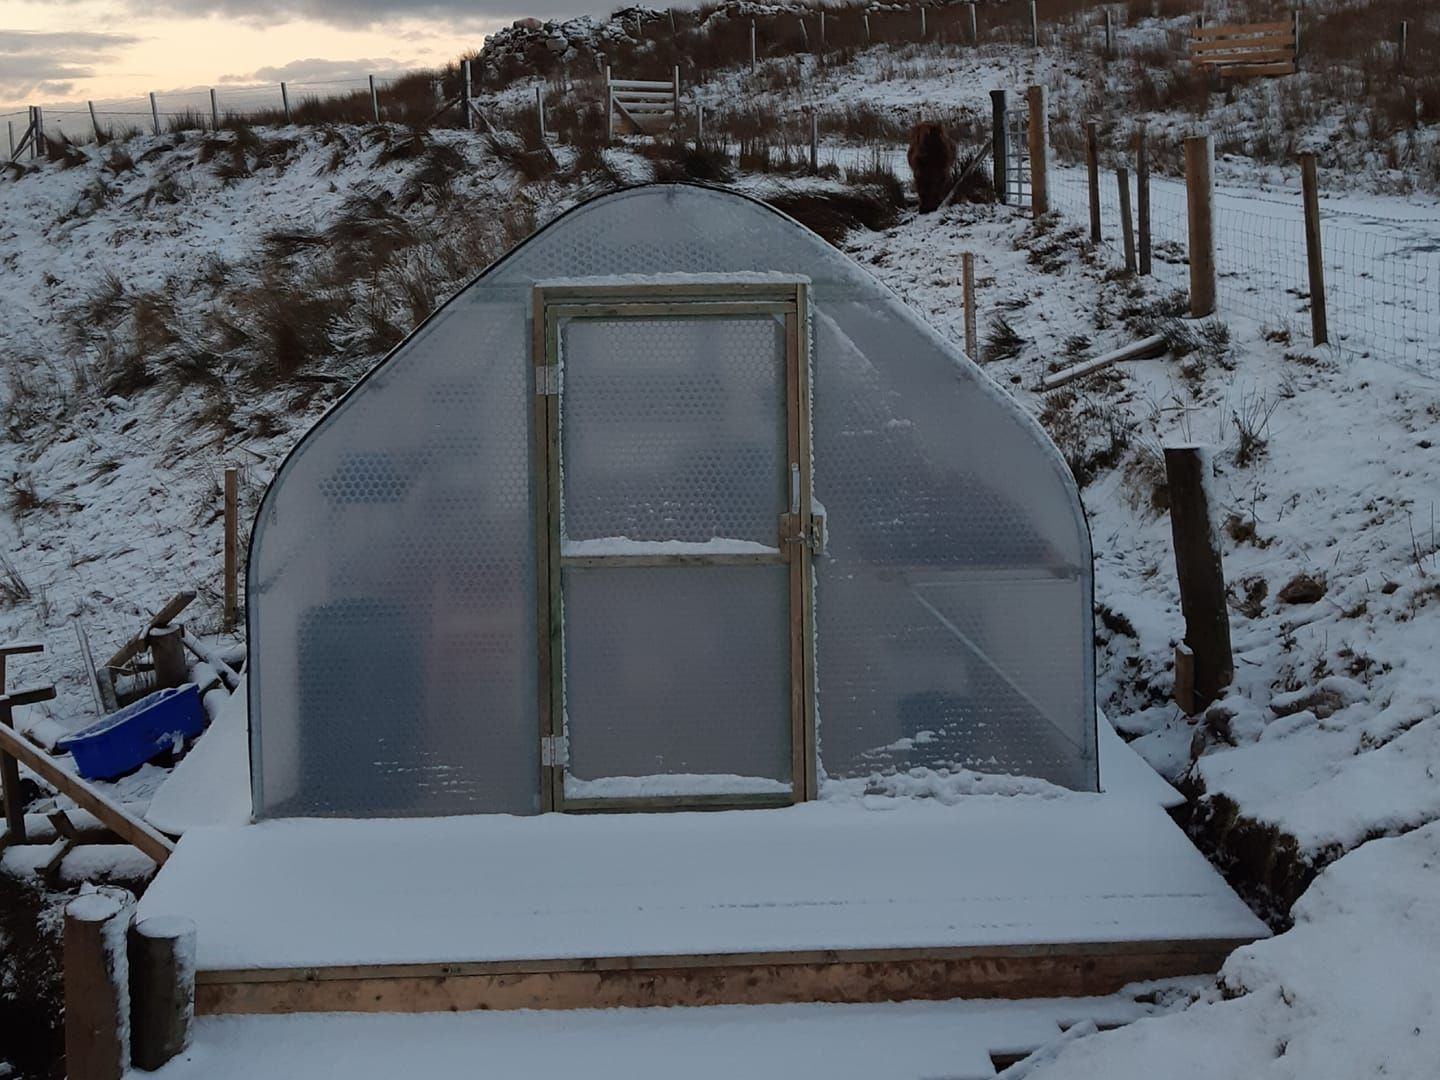 3m x 6m Keder Greenhouse finished on its platform with snow